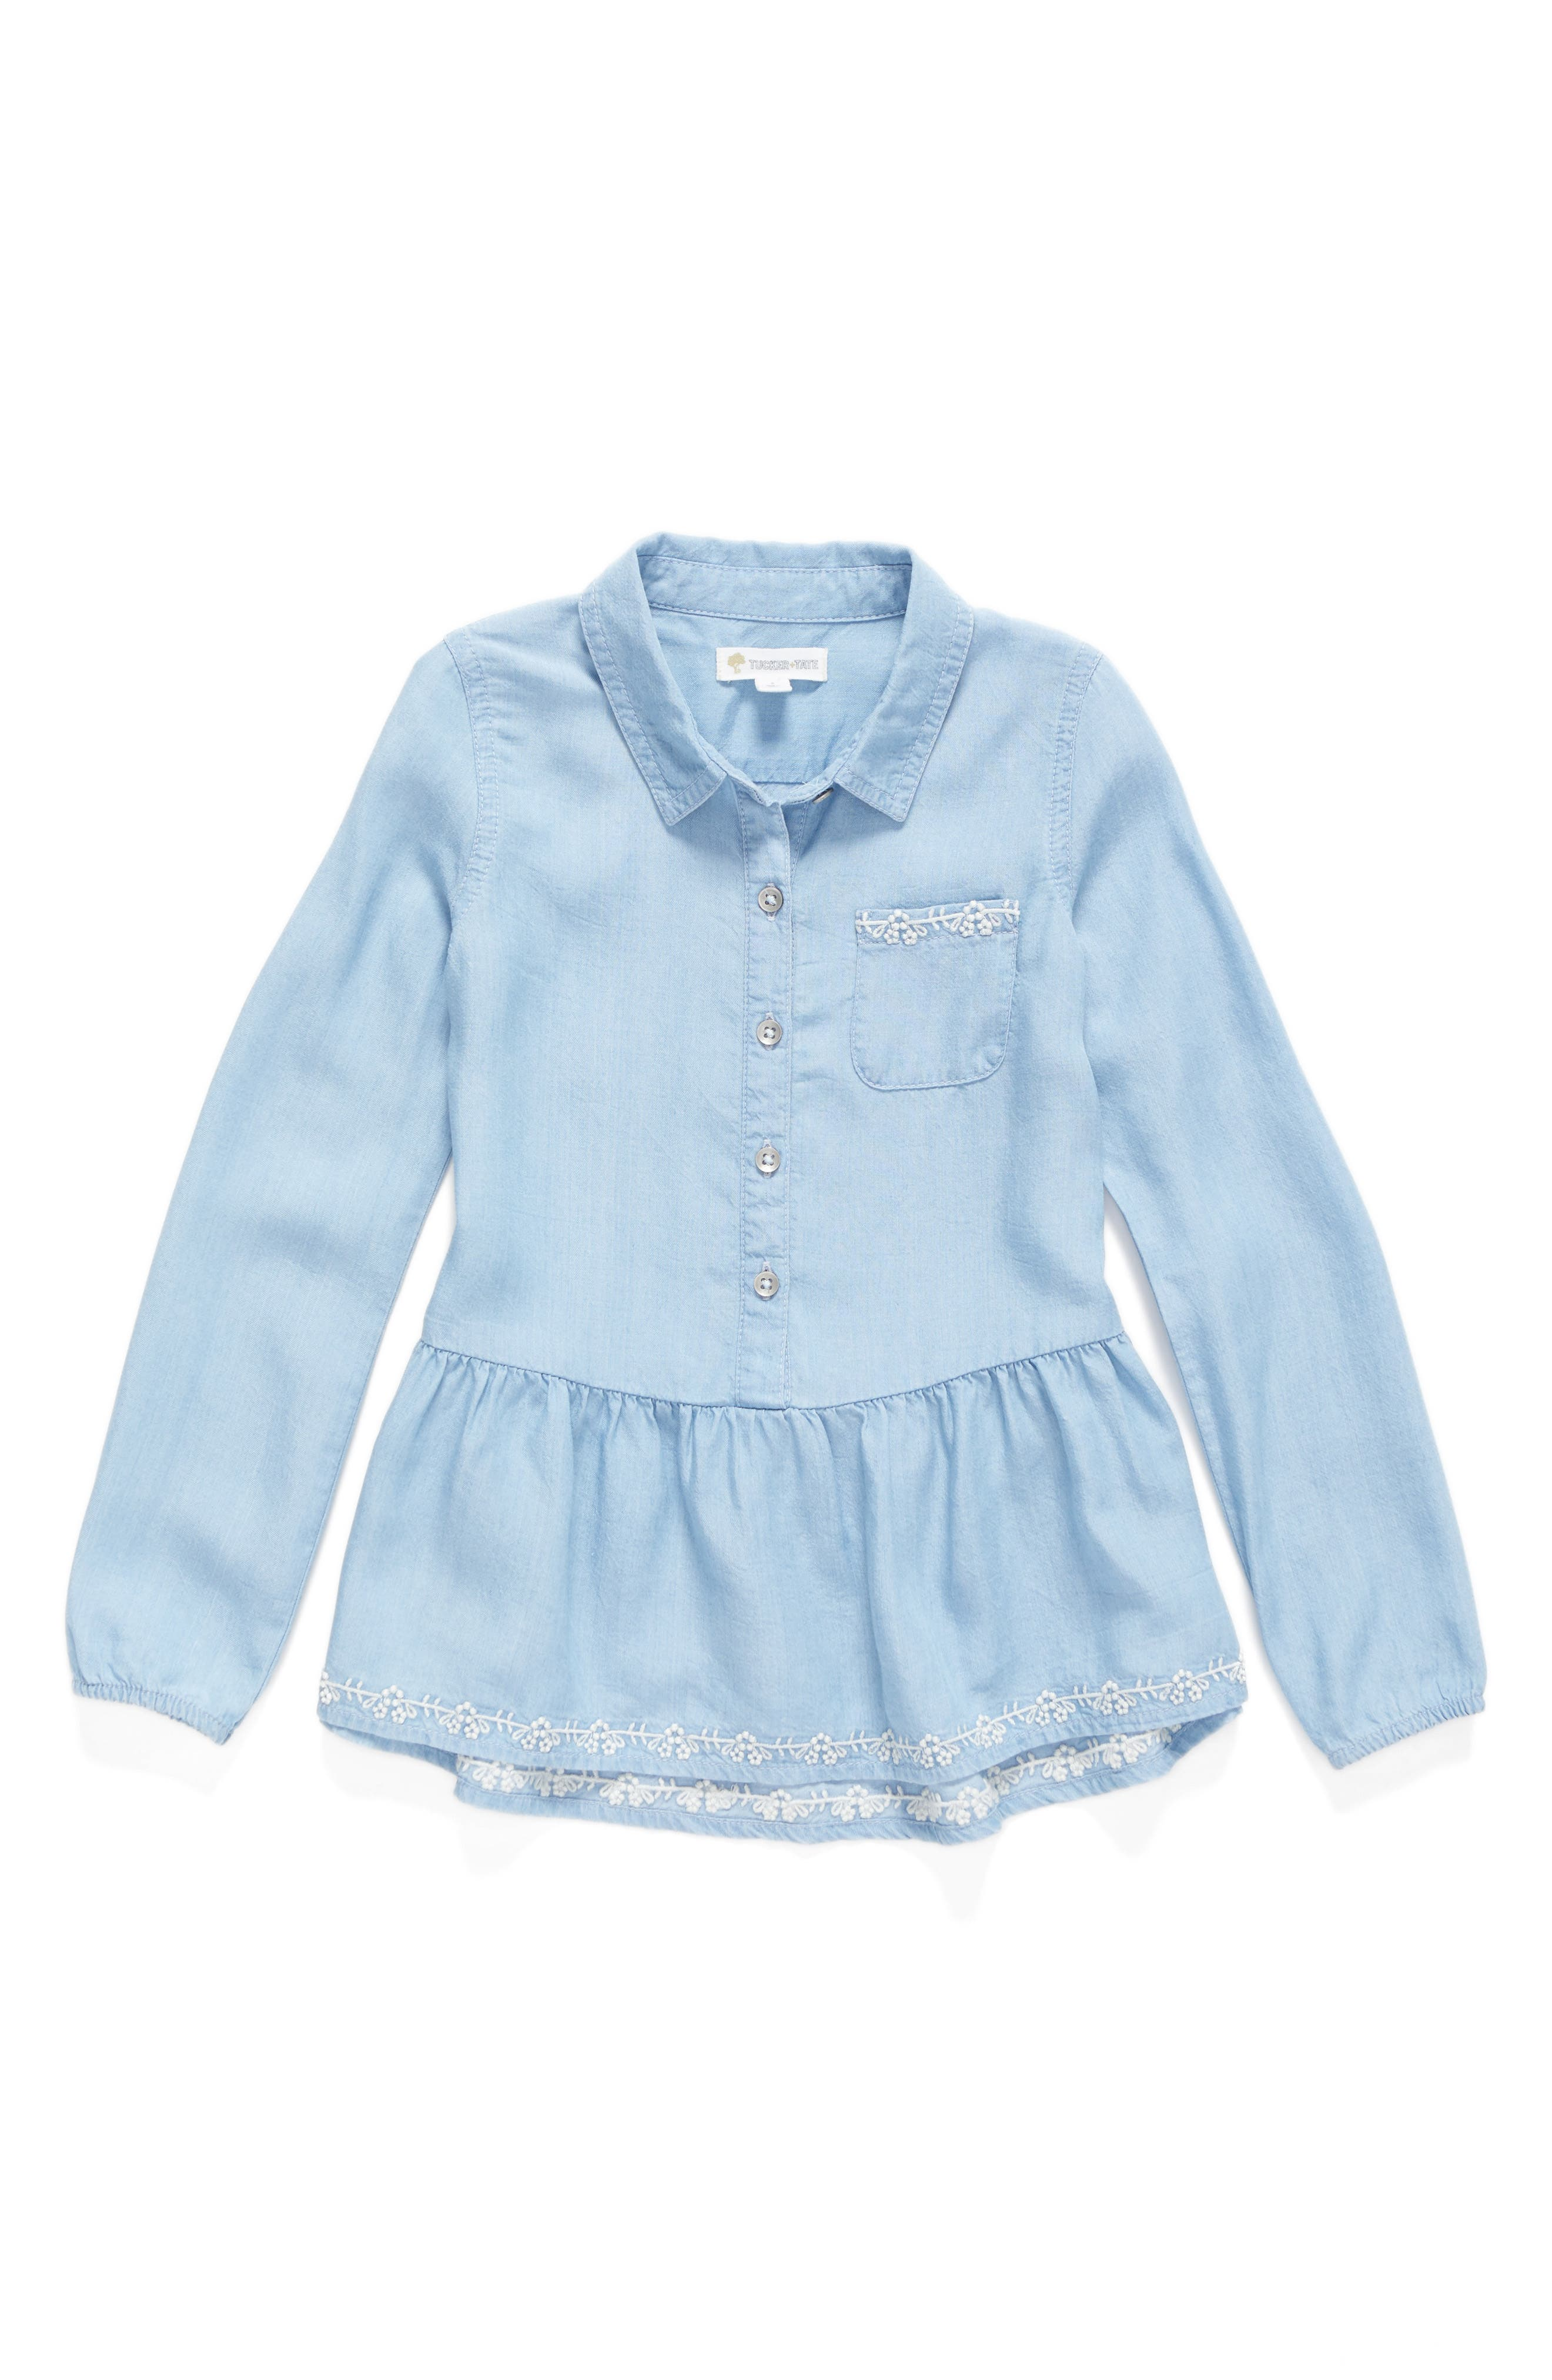 Tucker + Tate Chambray Top (Toddler Girls, Little Girls & Big Girls)